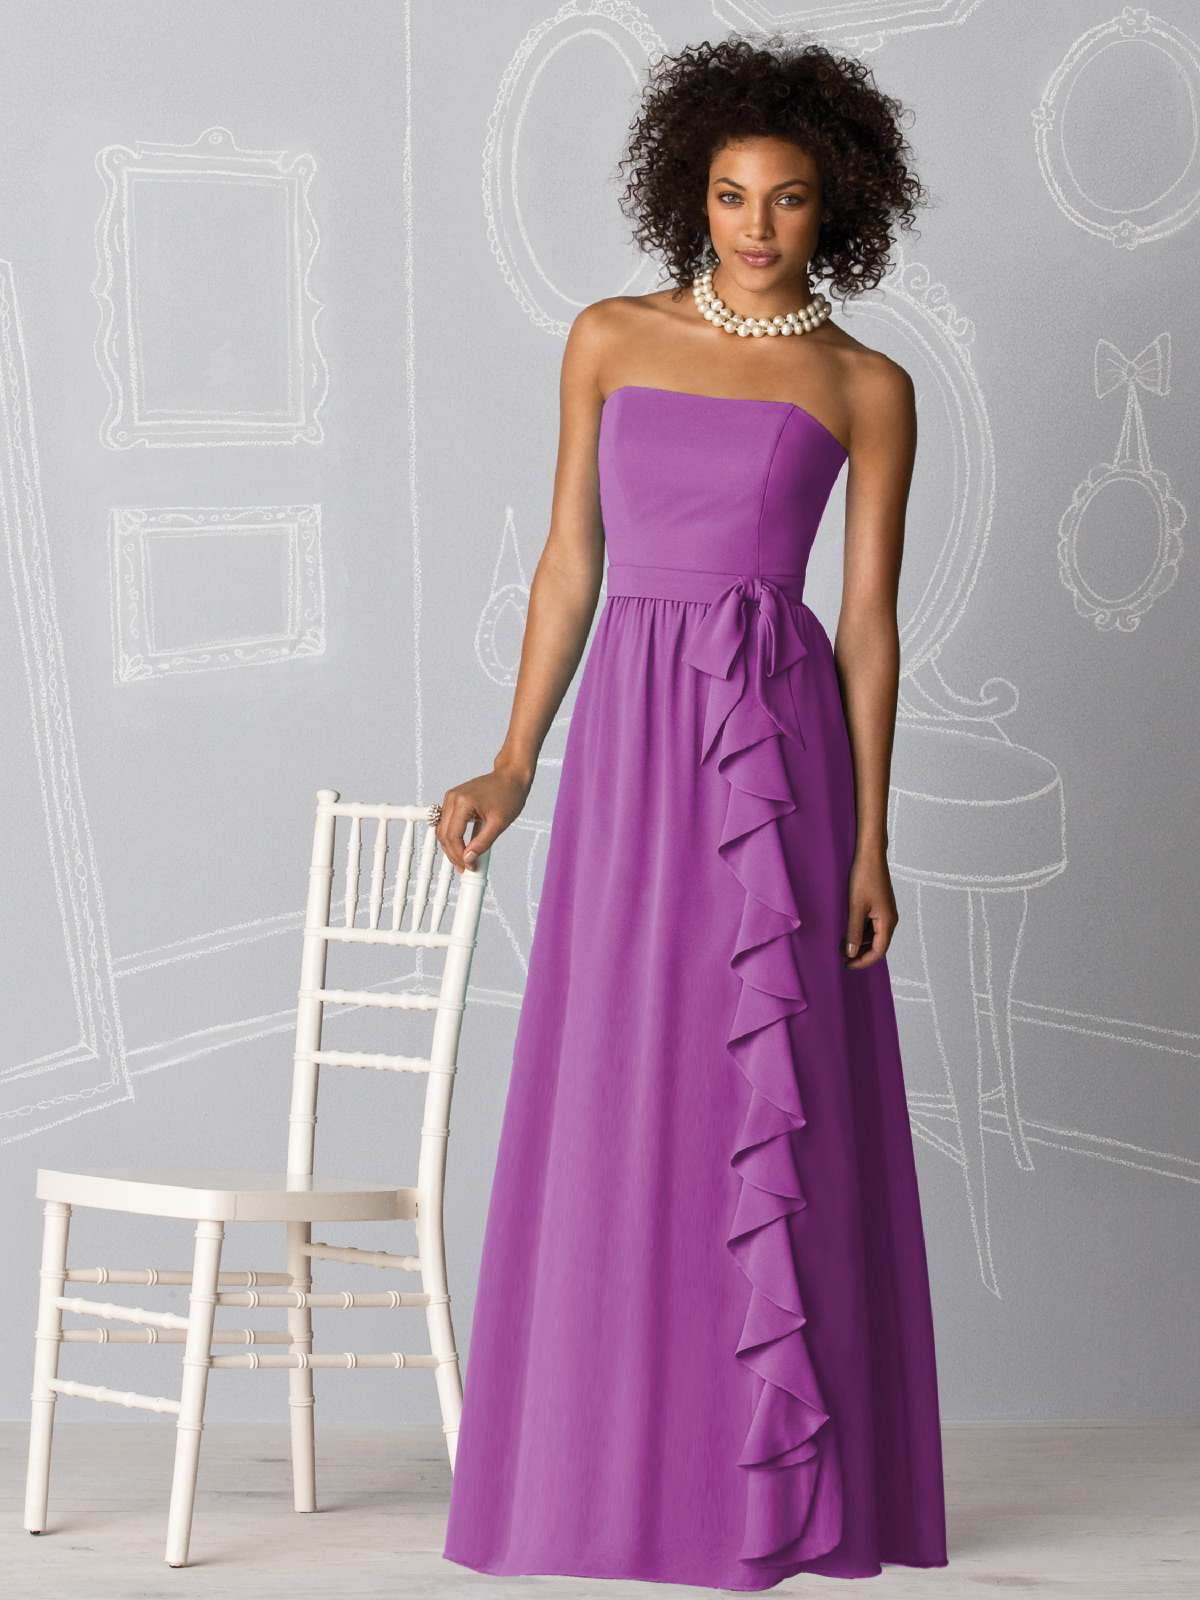 Violet Column Strapless Zipper Full Length Chiffon Prom Dresses With Ruffles And Sash